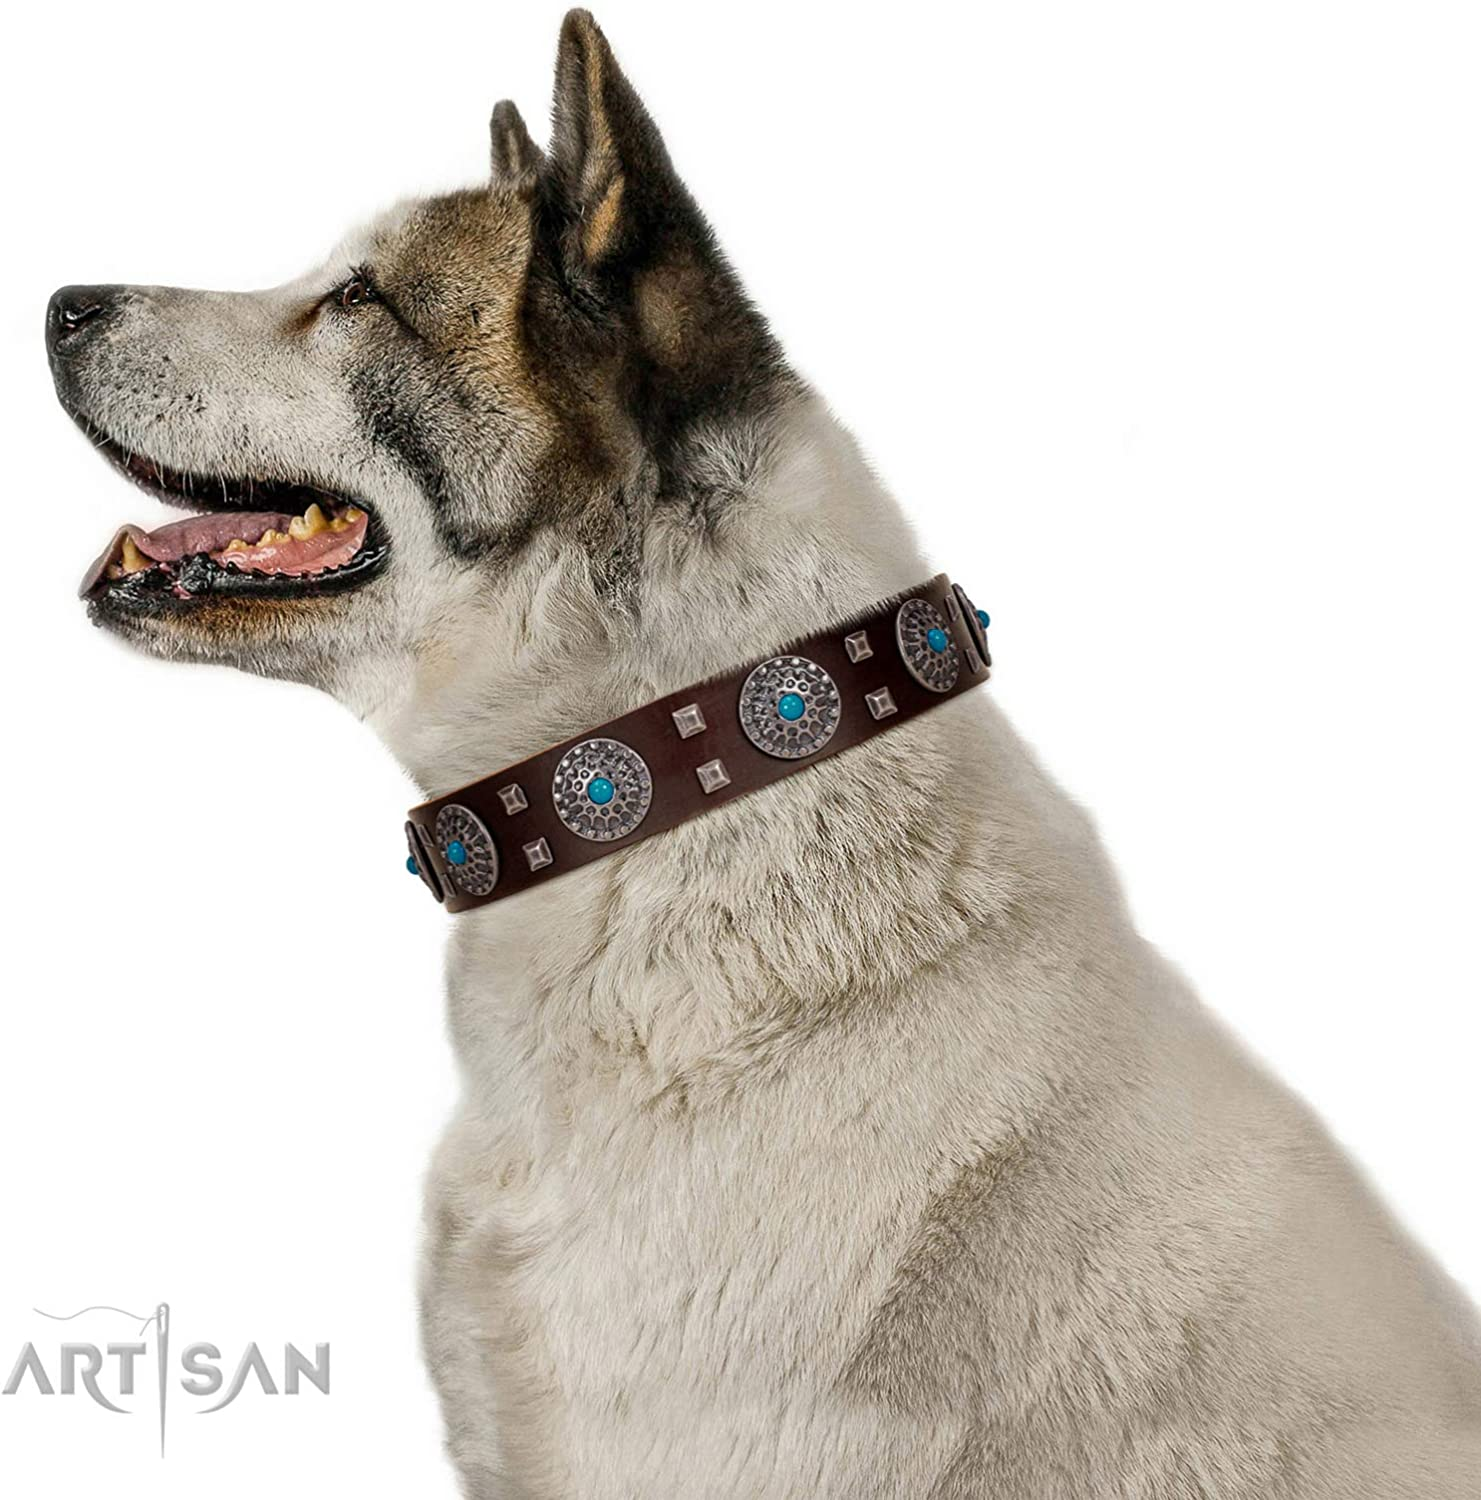 FDT Artisan 24 inch Brown Leather Dog Collar with Chrome Plated Brooches and Square Studs  Hypnotic Stones  1 1 2 inch (40 mm) Wide  Gift Packaging Included